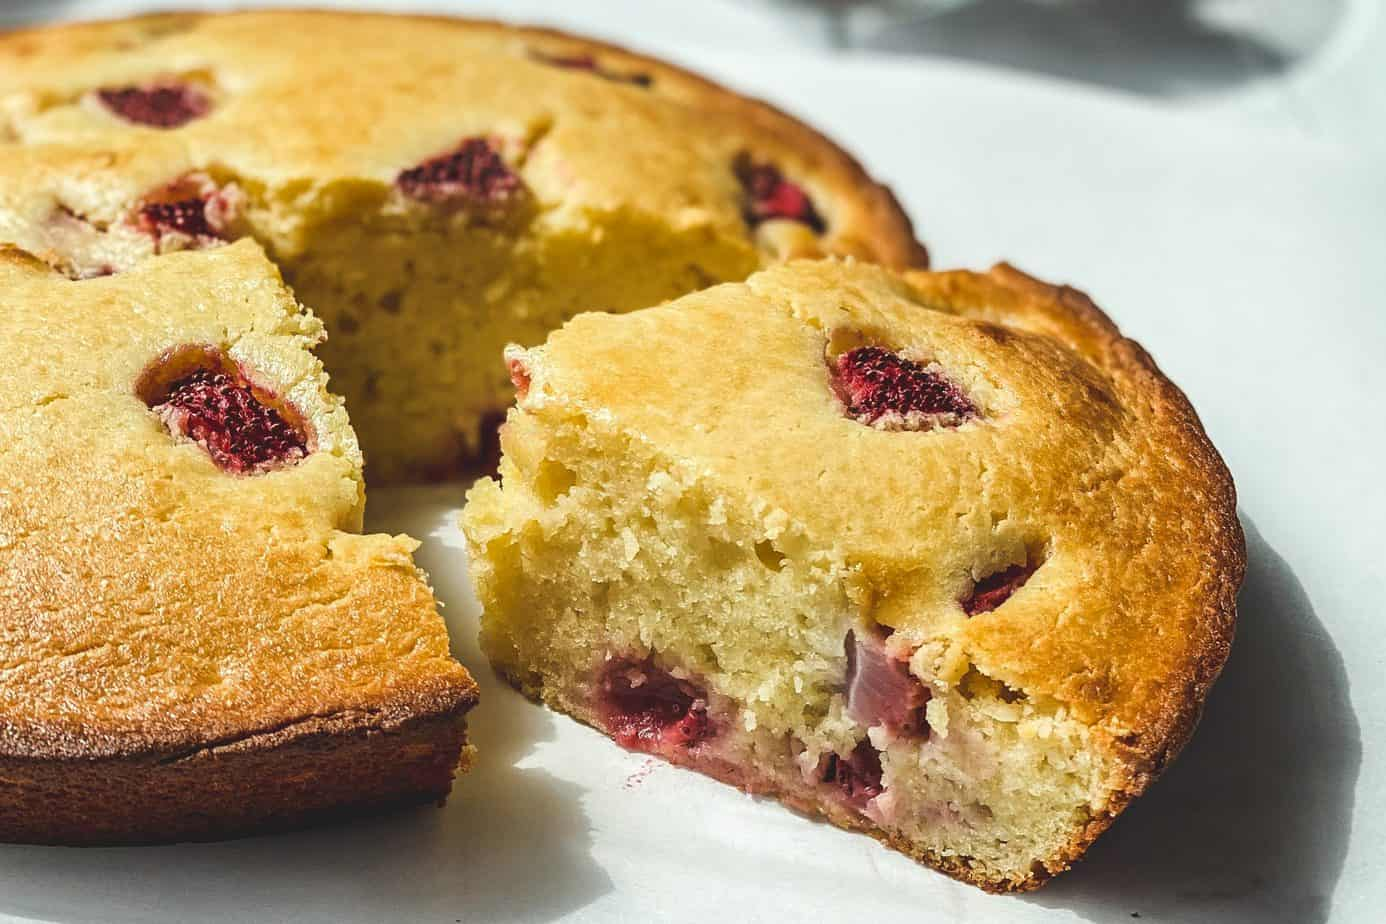 Slice of Strawberry Ricotta Cake